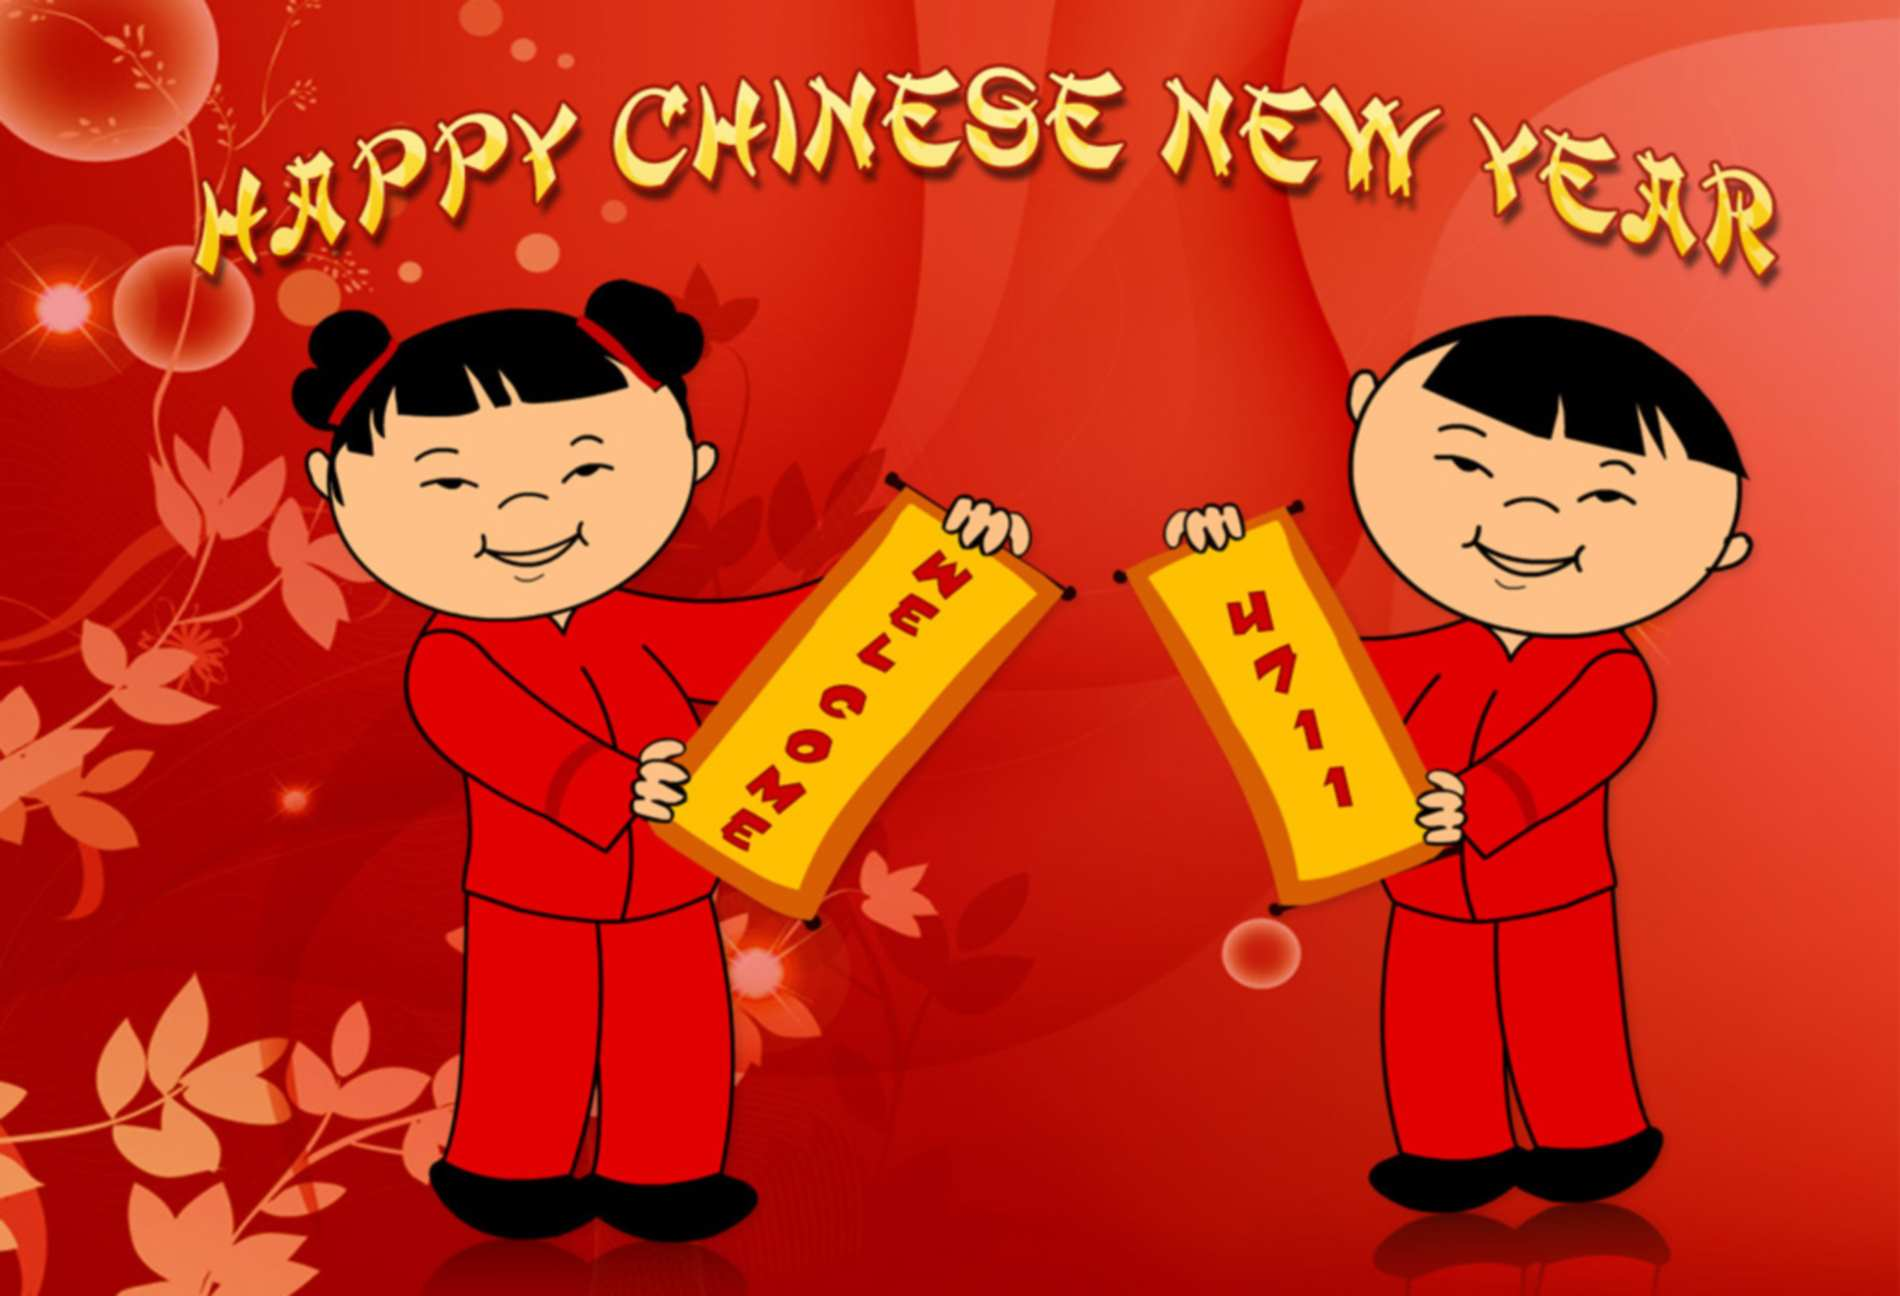 55 happy chinese new year images photos wishes wallpapers picsmine happy chinese new year greetings image m4hsunfo Image collections